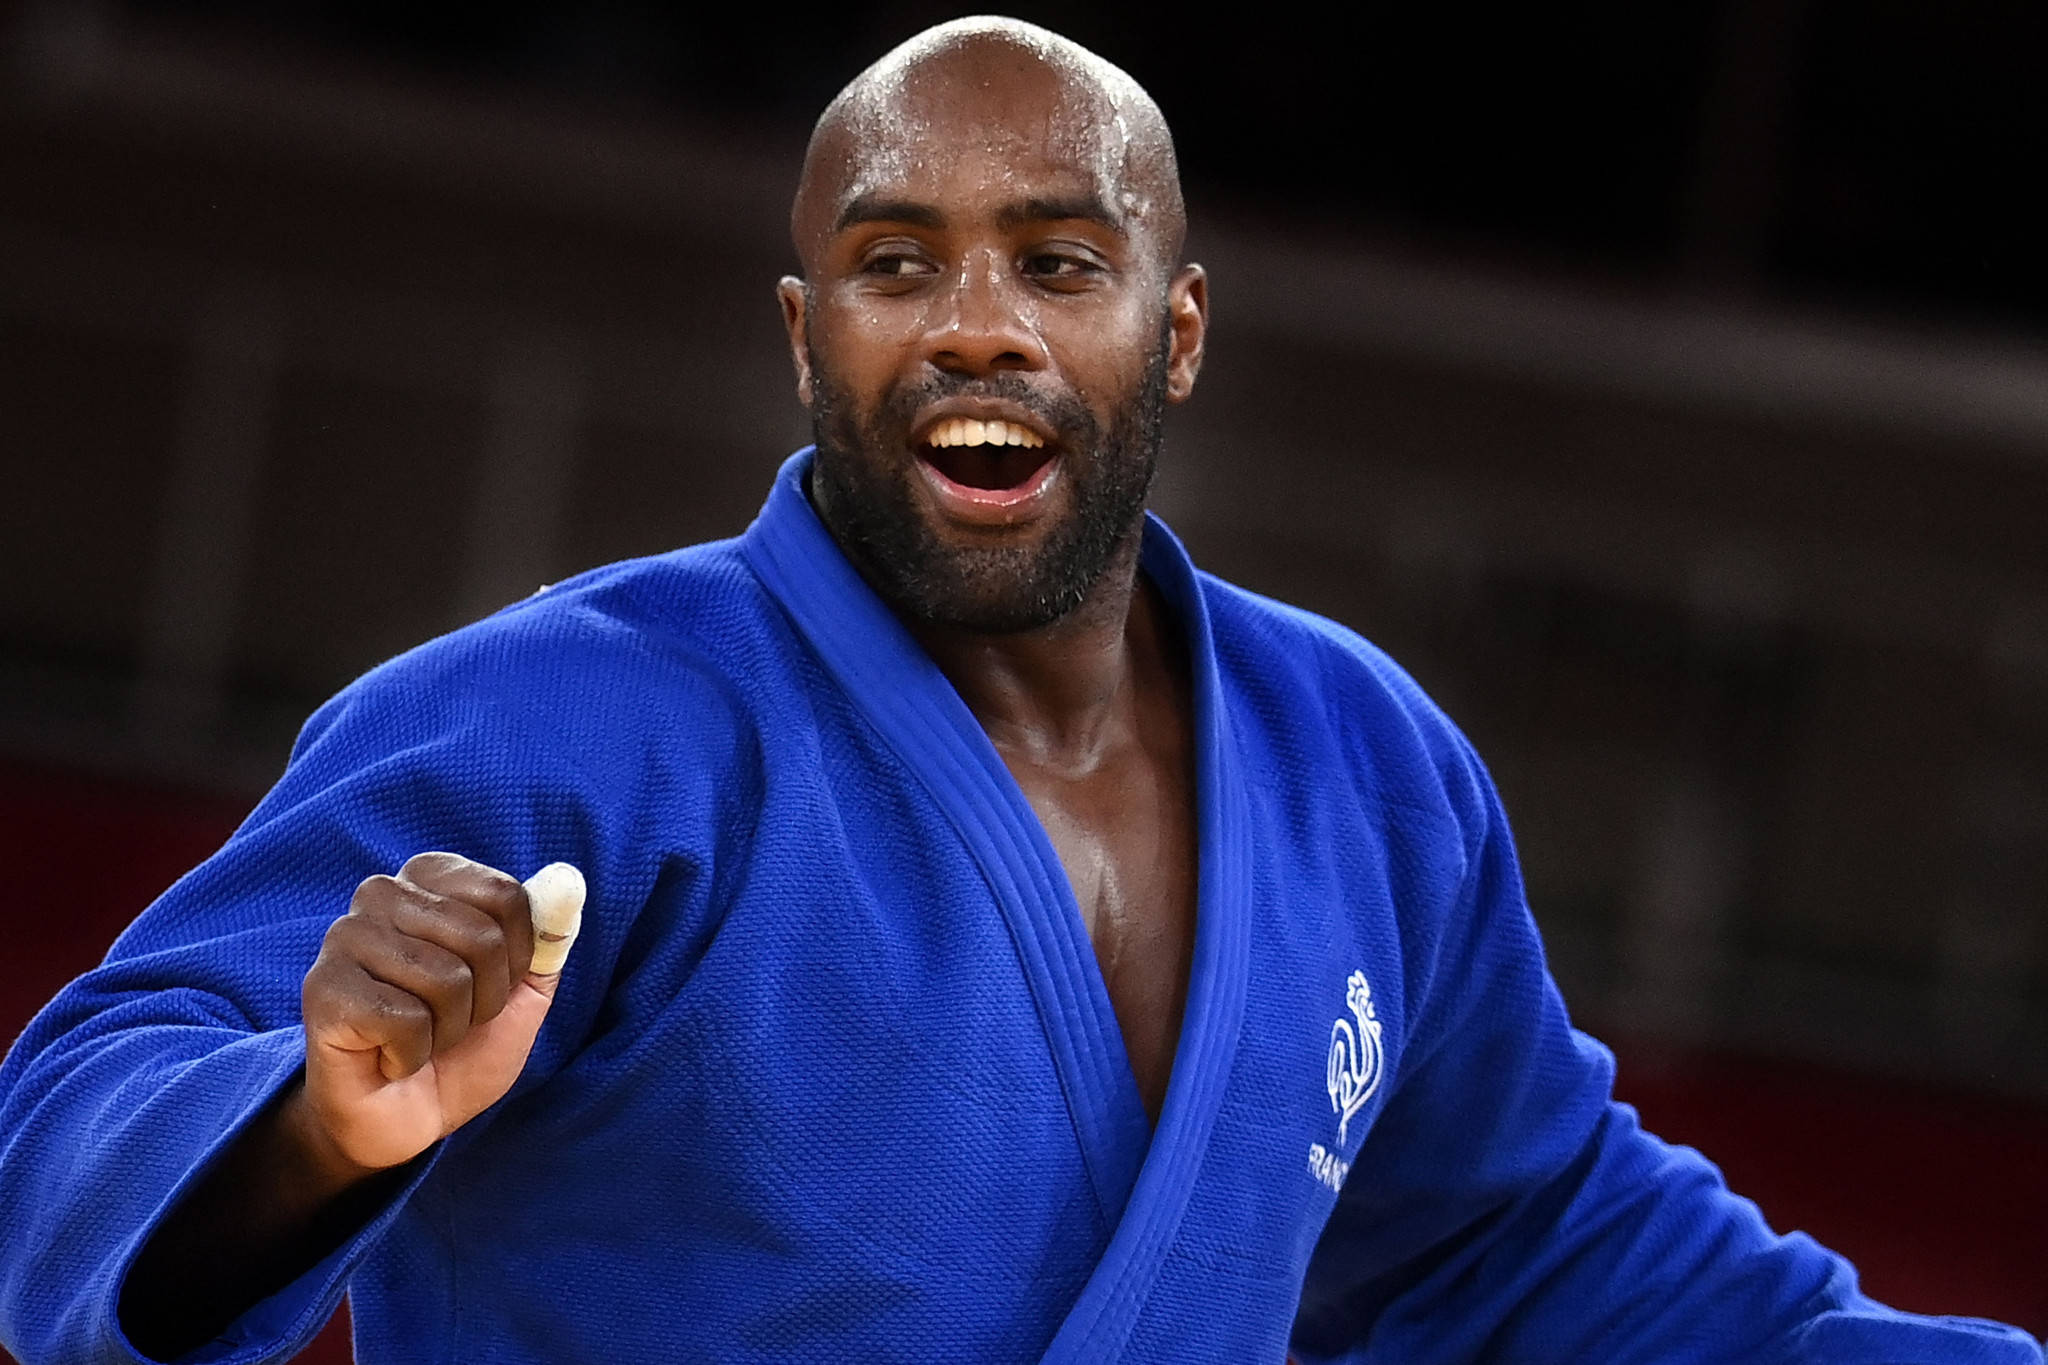 Tony Estanguet singled out judo legend Teddy Riner for praise ©Getty Images